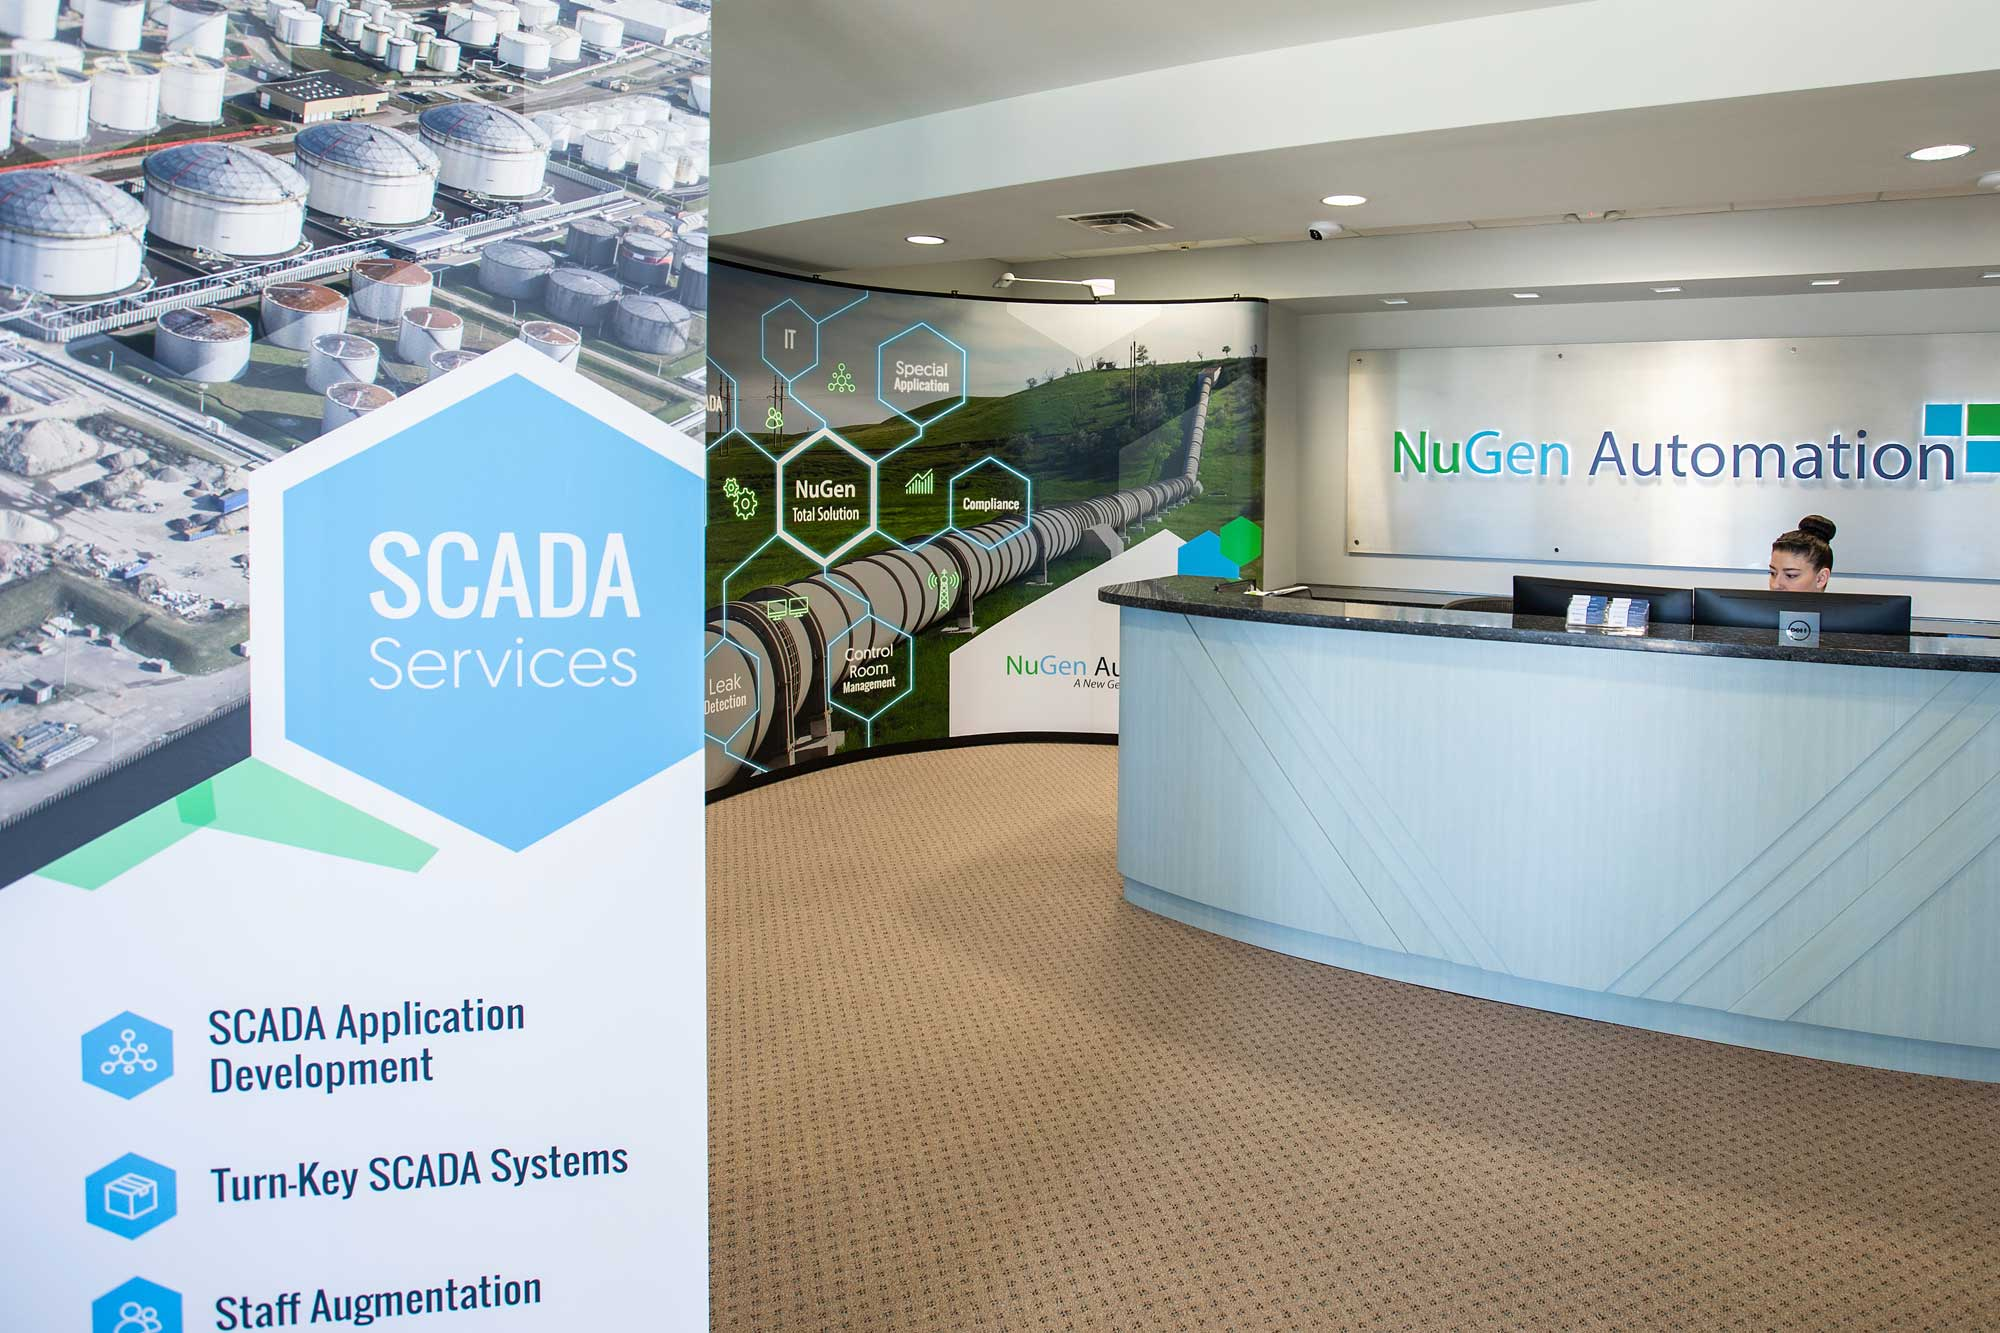 Reception area of Nugen Automation showing desk and pull up banner